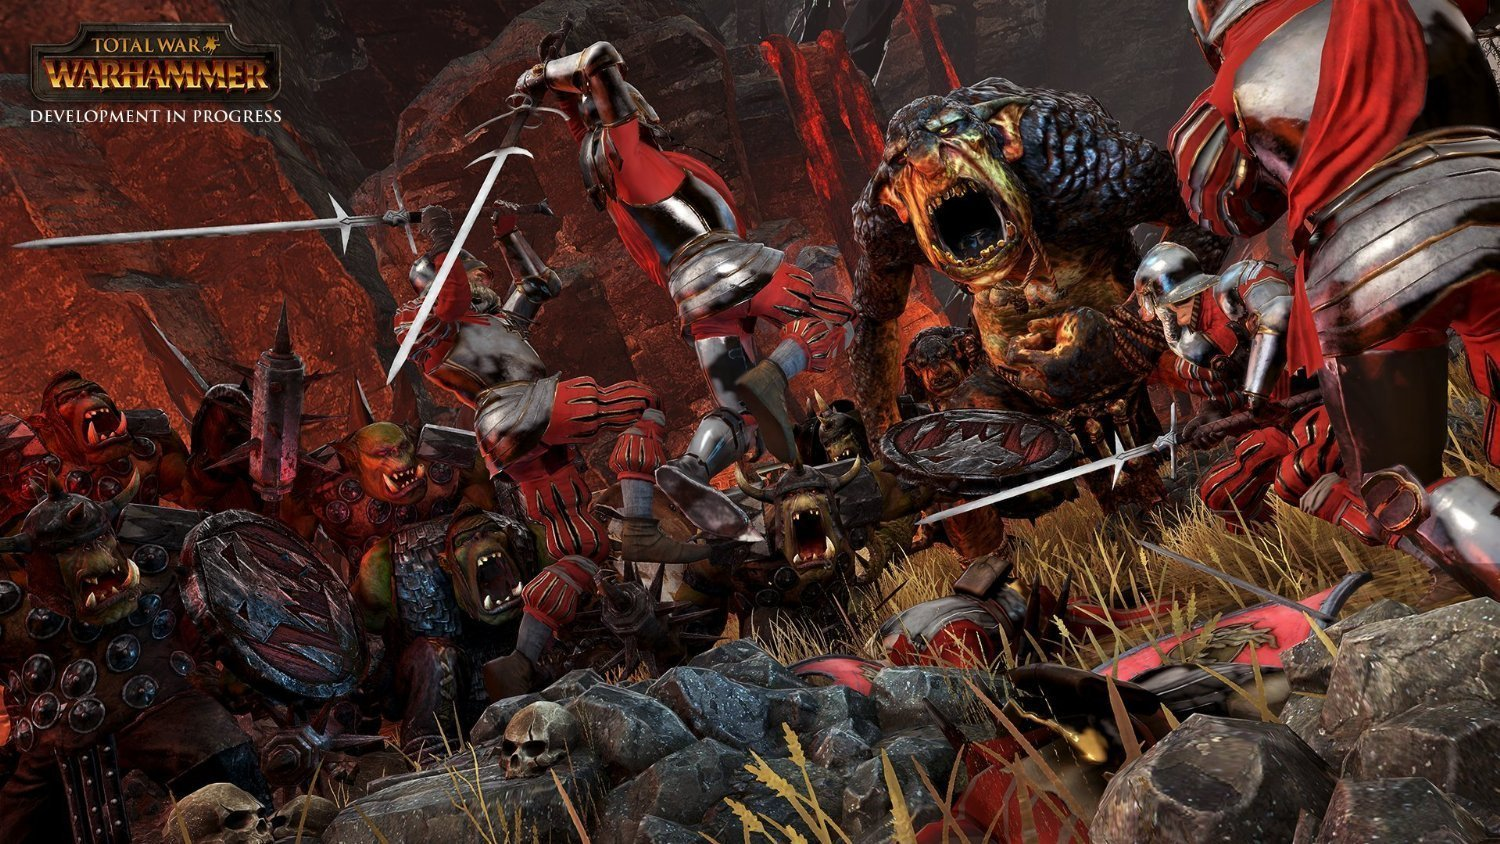 Total War: WARHAMMER image 1